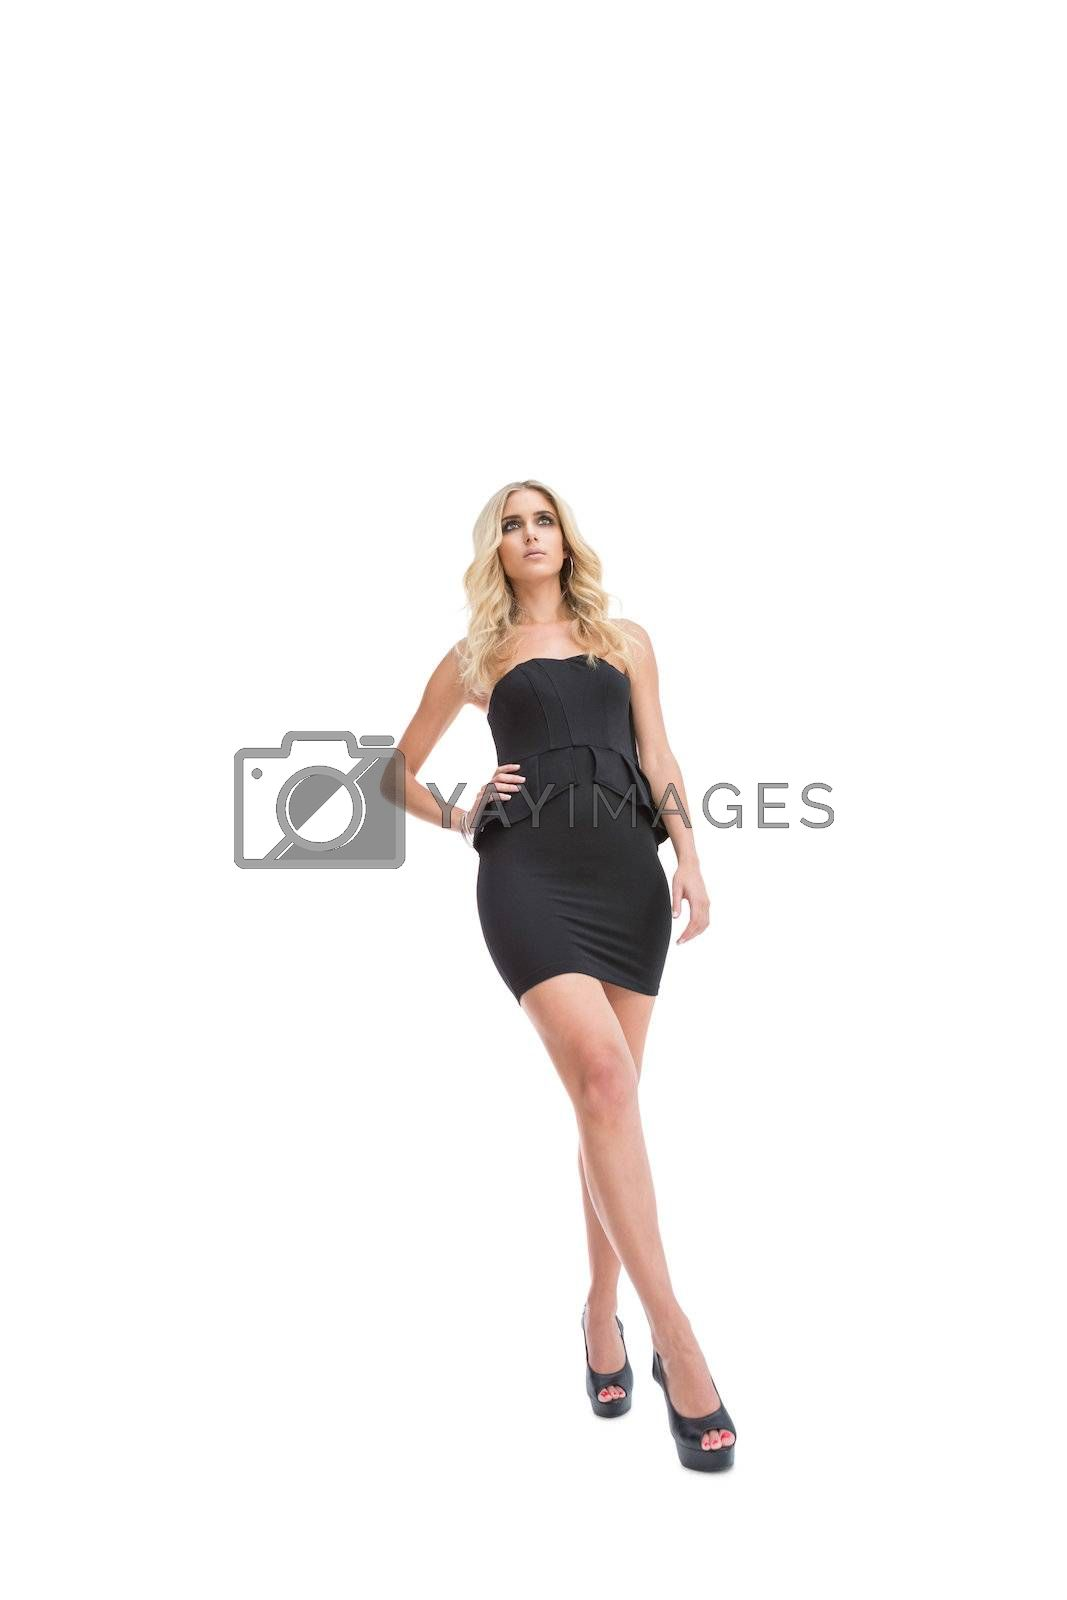 Low angle view of attractive blonde woman posing by Wavebreakmedia